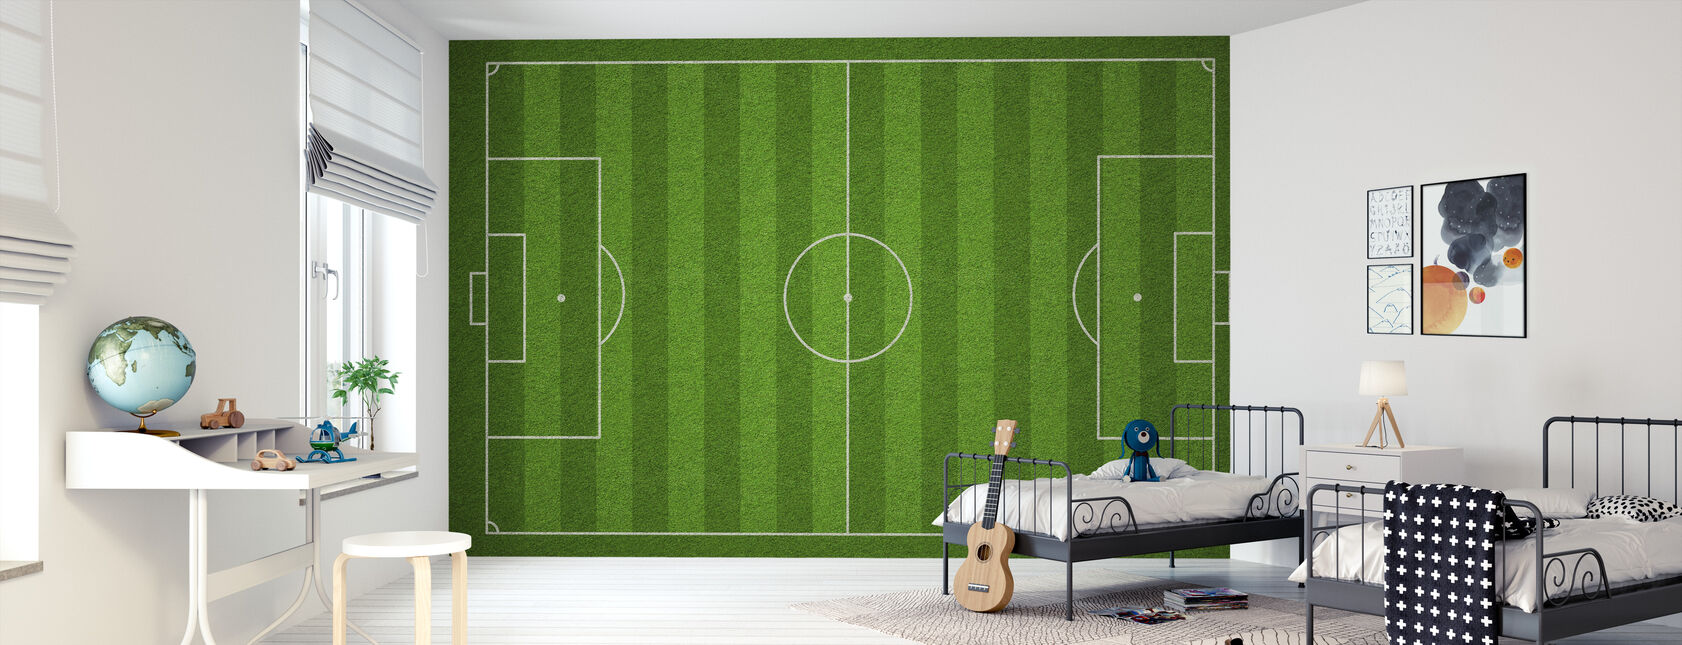 Football Field - Wallpaper - Kids Room